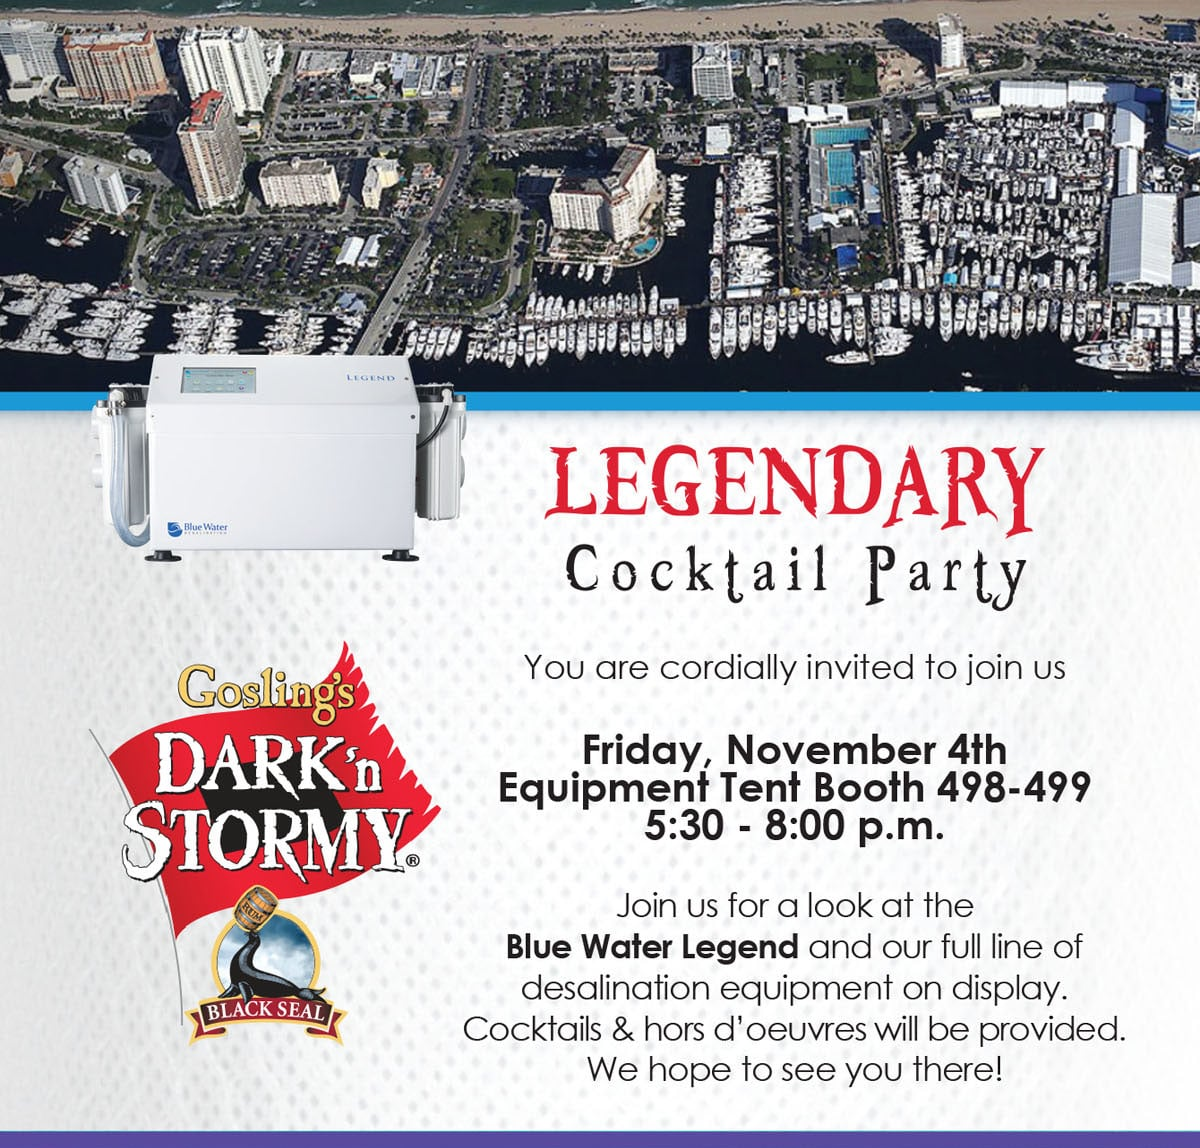 Legendary Cocktail Party